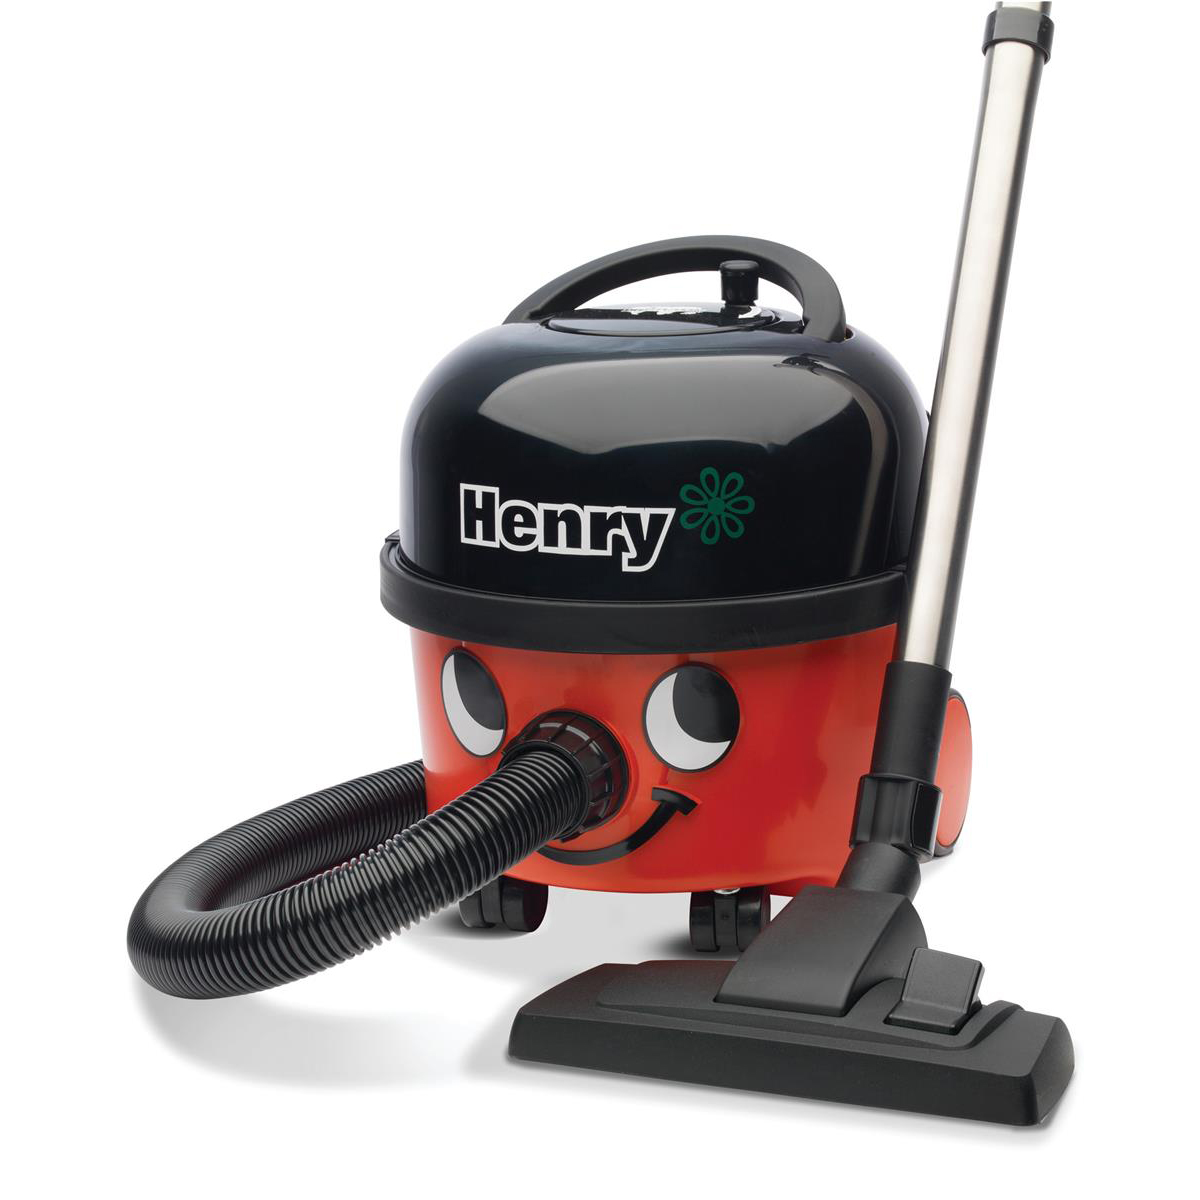 Numatic Henry Vacuum Cleaner 620W 6 Litre 7.5kg W315xD340xH345mm Red Ref HVR160